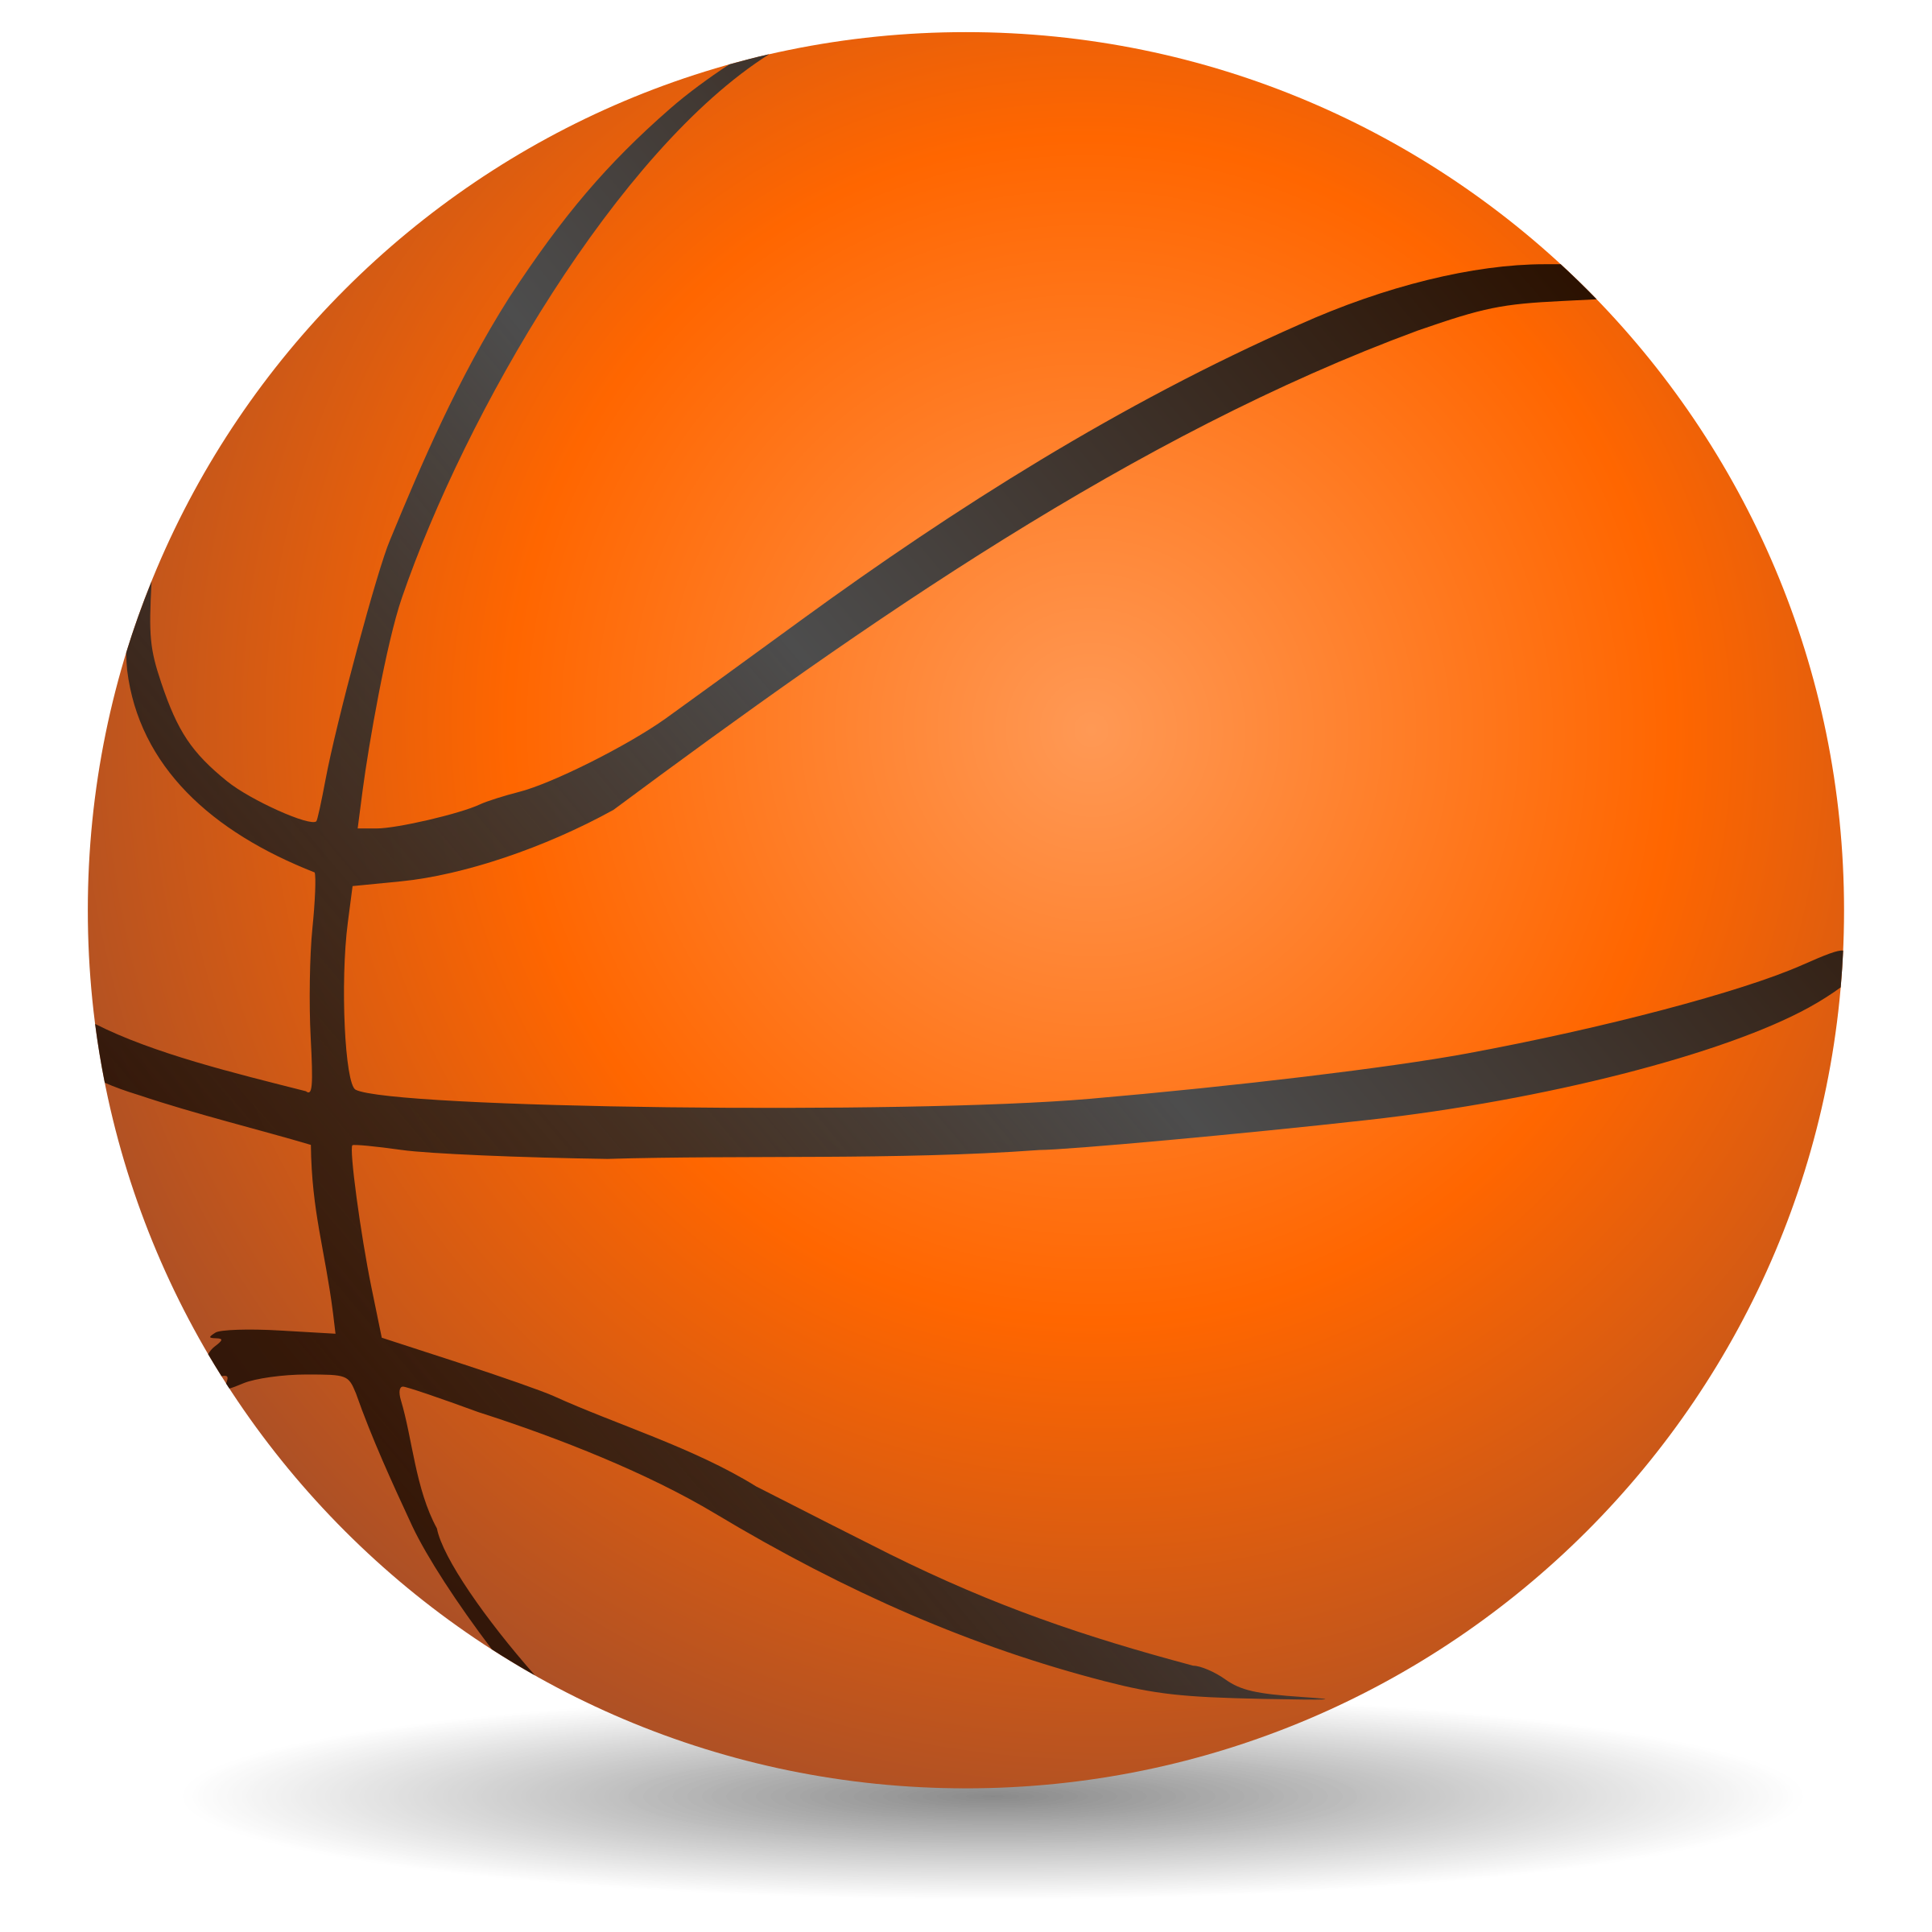 svg free stock Basketball clip pdf. Small clipart free on